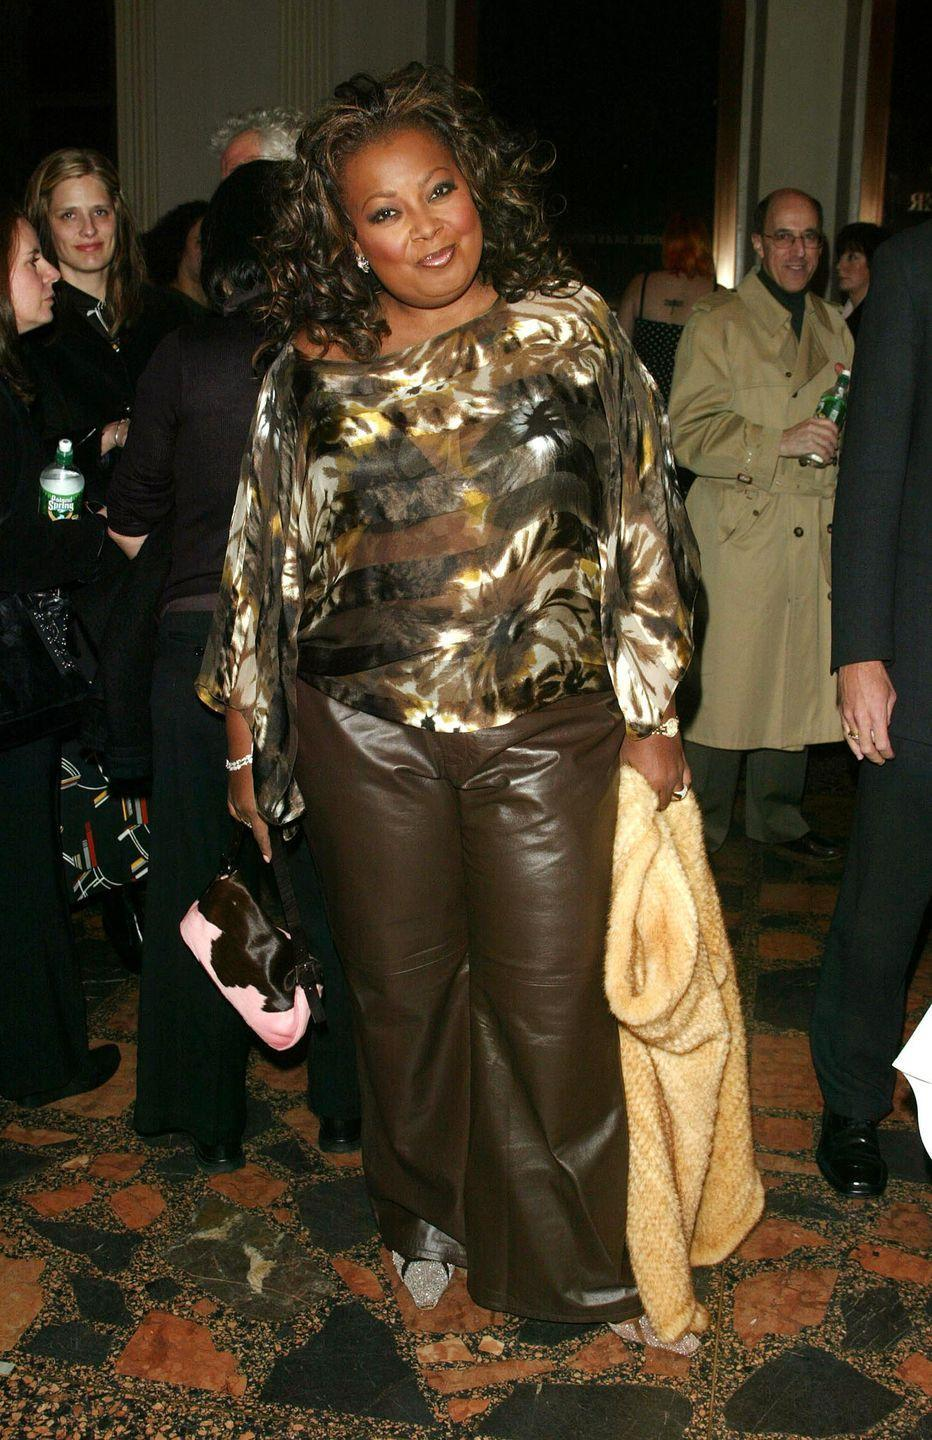 """<p>The former co-host of <em>The View</em> was <a href=""""https://www.today.com/health/star-jones-her-weight-loss-i-wasnt-plus-size-i-1C9381962"""" rel=""""nofollow noopener"""" target=""""_blank"""" data-ylk=""""slk:diagnosed as &quot;morbidly obese&quot;"""" class=""""link rapid-noclick-resp"""">diagnosed as """"morbidly obese""""</a> when she reached 307 pounds in 2003. Shortly afterwards, she made the decision to undergo gastric bypass surgery.</p>"""